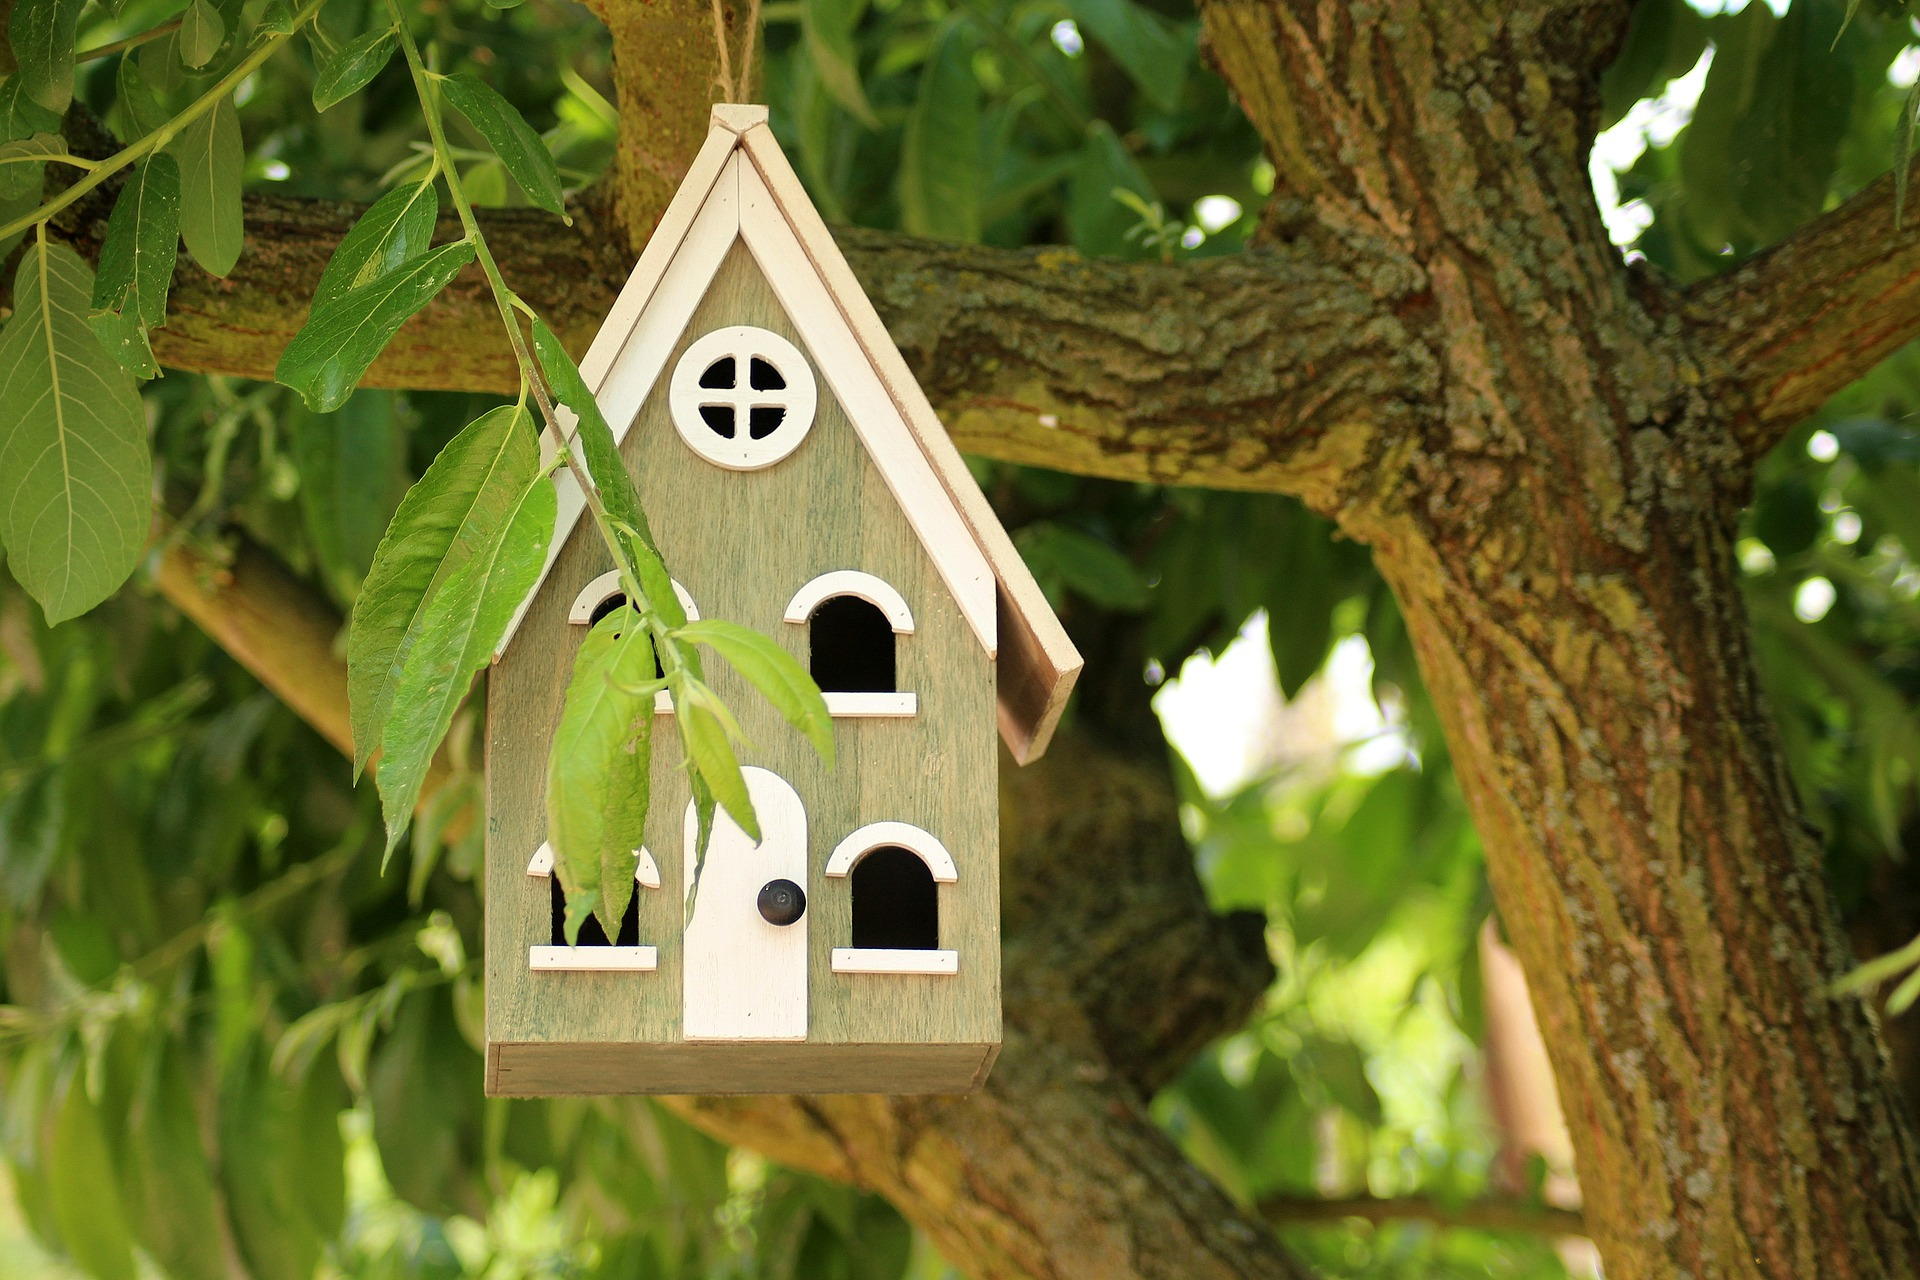 How to build a bird house yourself: building instructions for bird houses